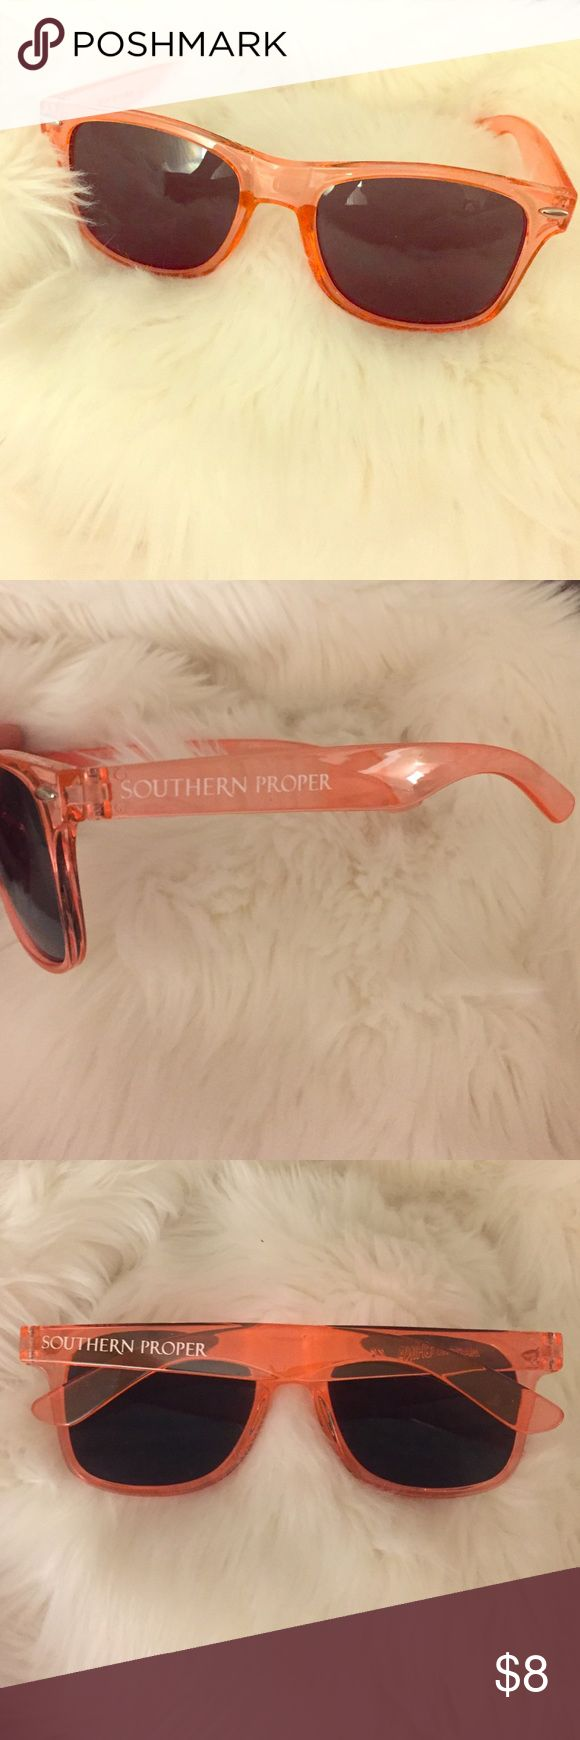 Southern Proper Clear Orange Sunglasses 🍊 Southern Proper clear orange plastic rayban style sunglasses 🍊✨Tag a Syracuse or Clemson fan 😊 Southern Proper Accessories Sunglasses